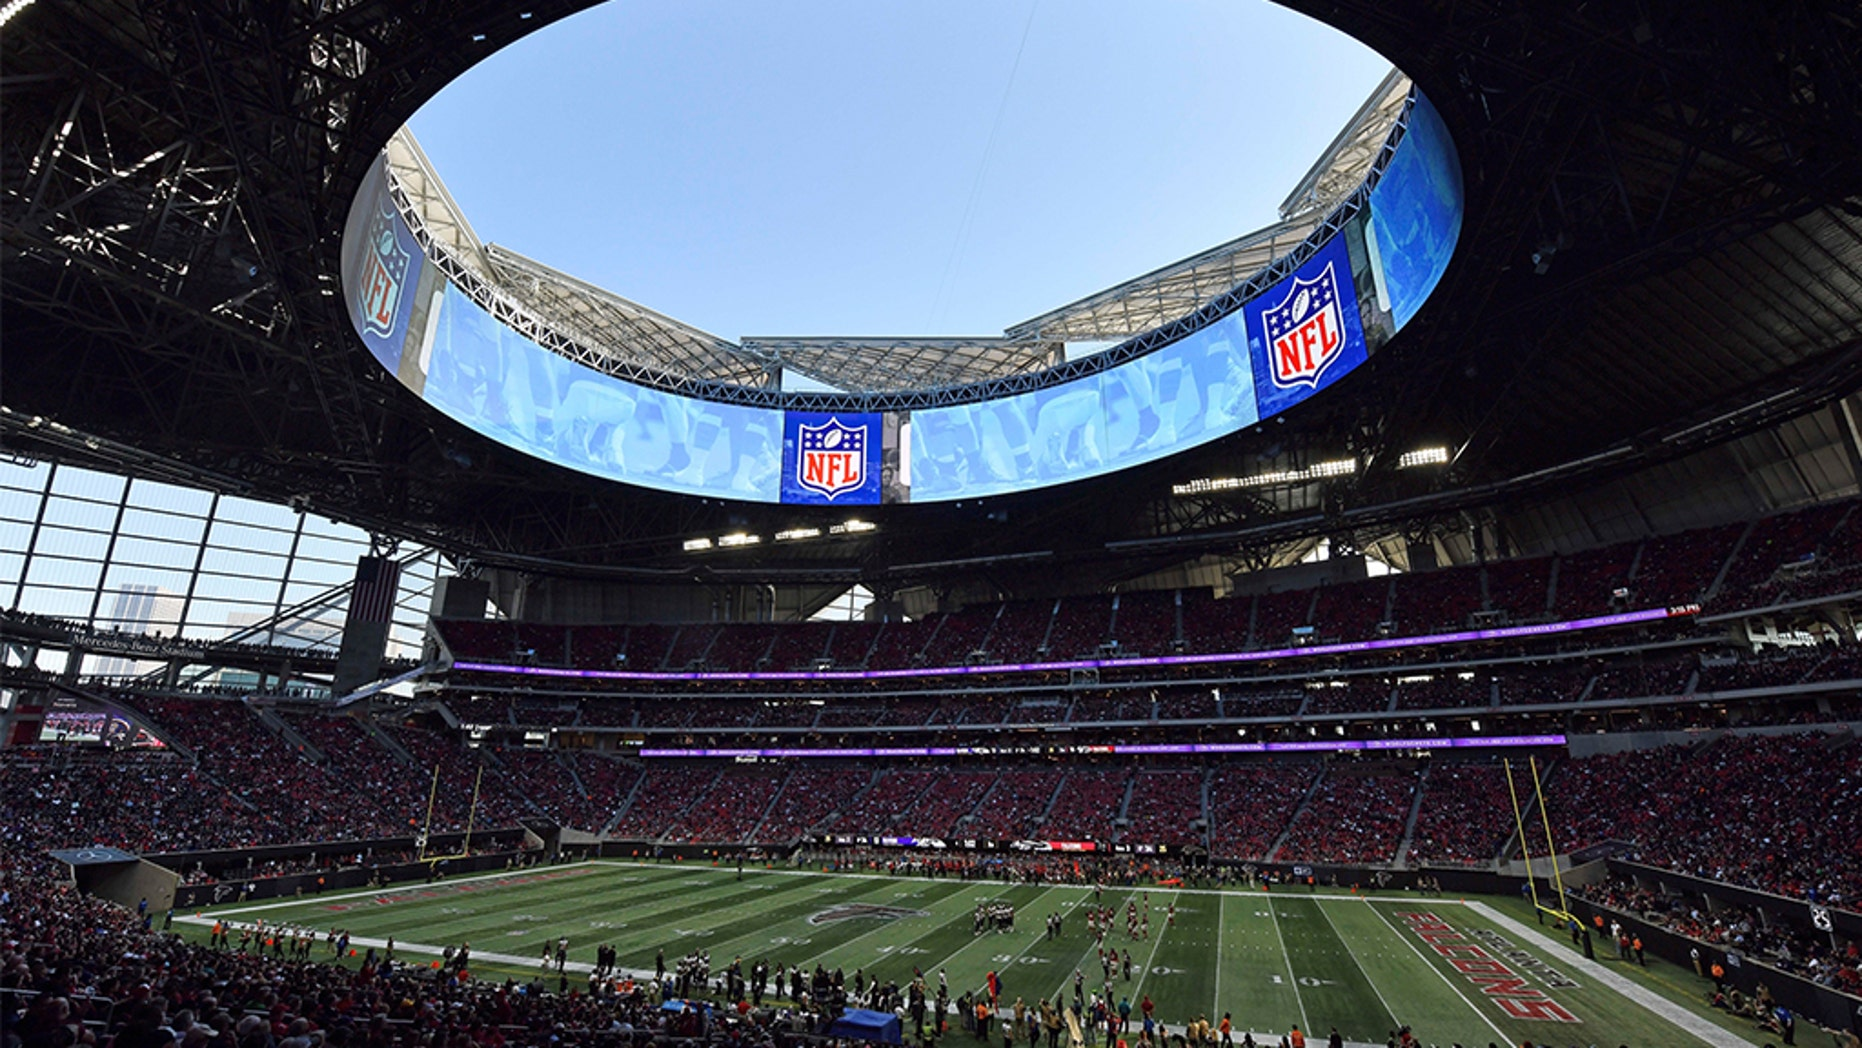 Super Bowl LIII will play at the Mercedes-Benz stadium in Atlanta. (AP Photo/Danny Karnik)